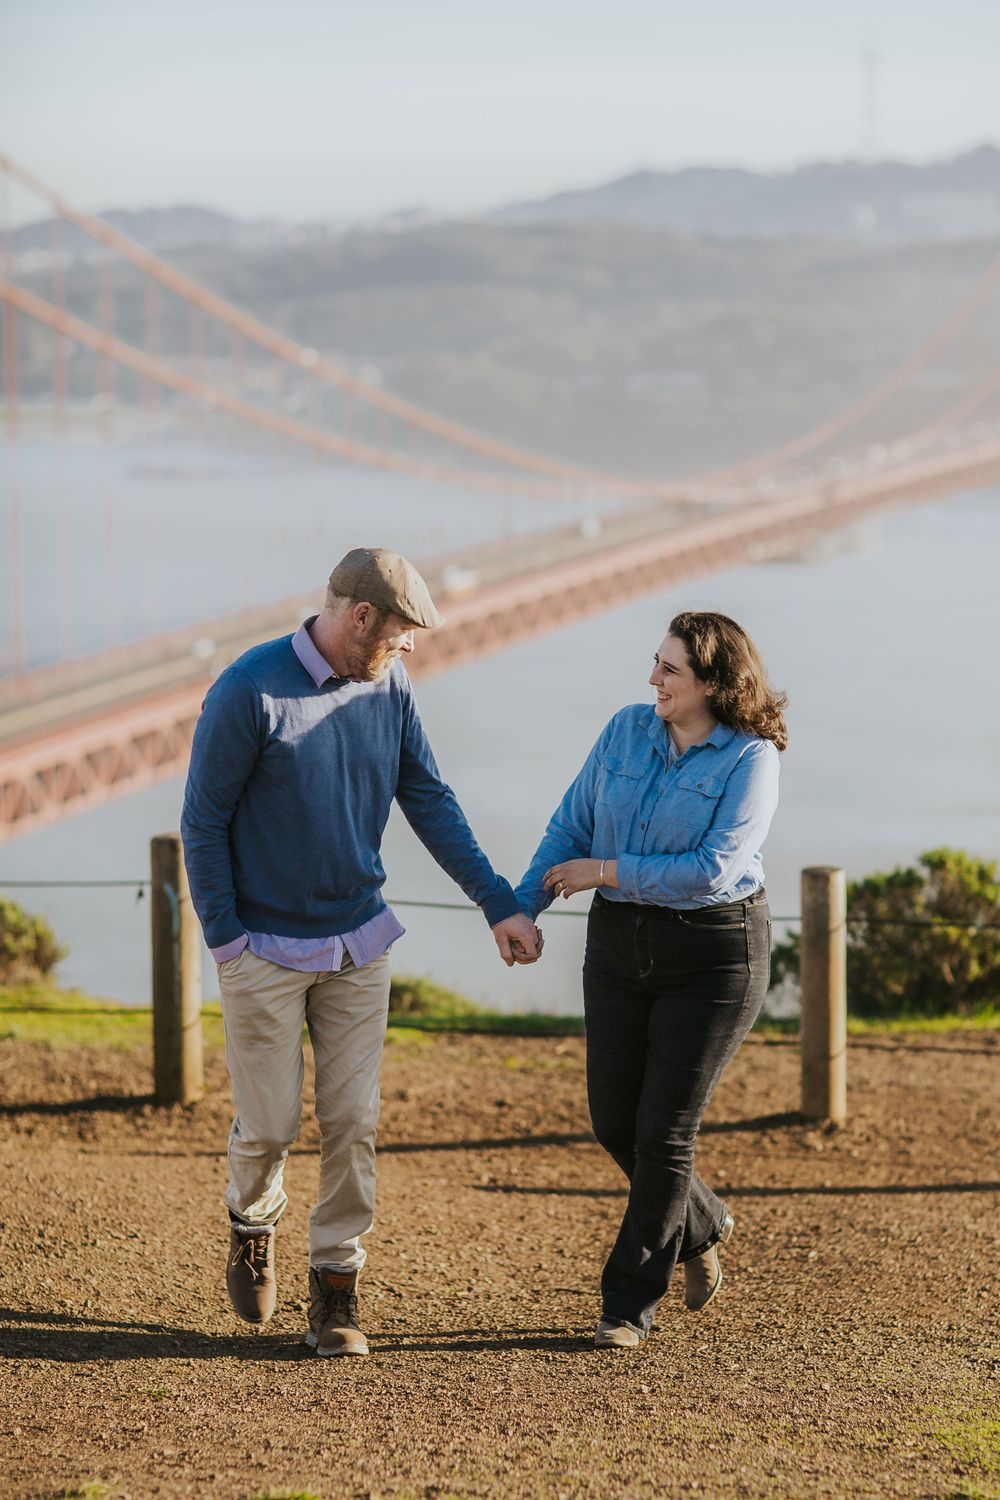 rebecca skidgel photography engagement session in marin headlands holding hands walking laughing golden gate bridge